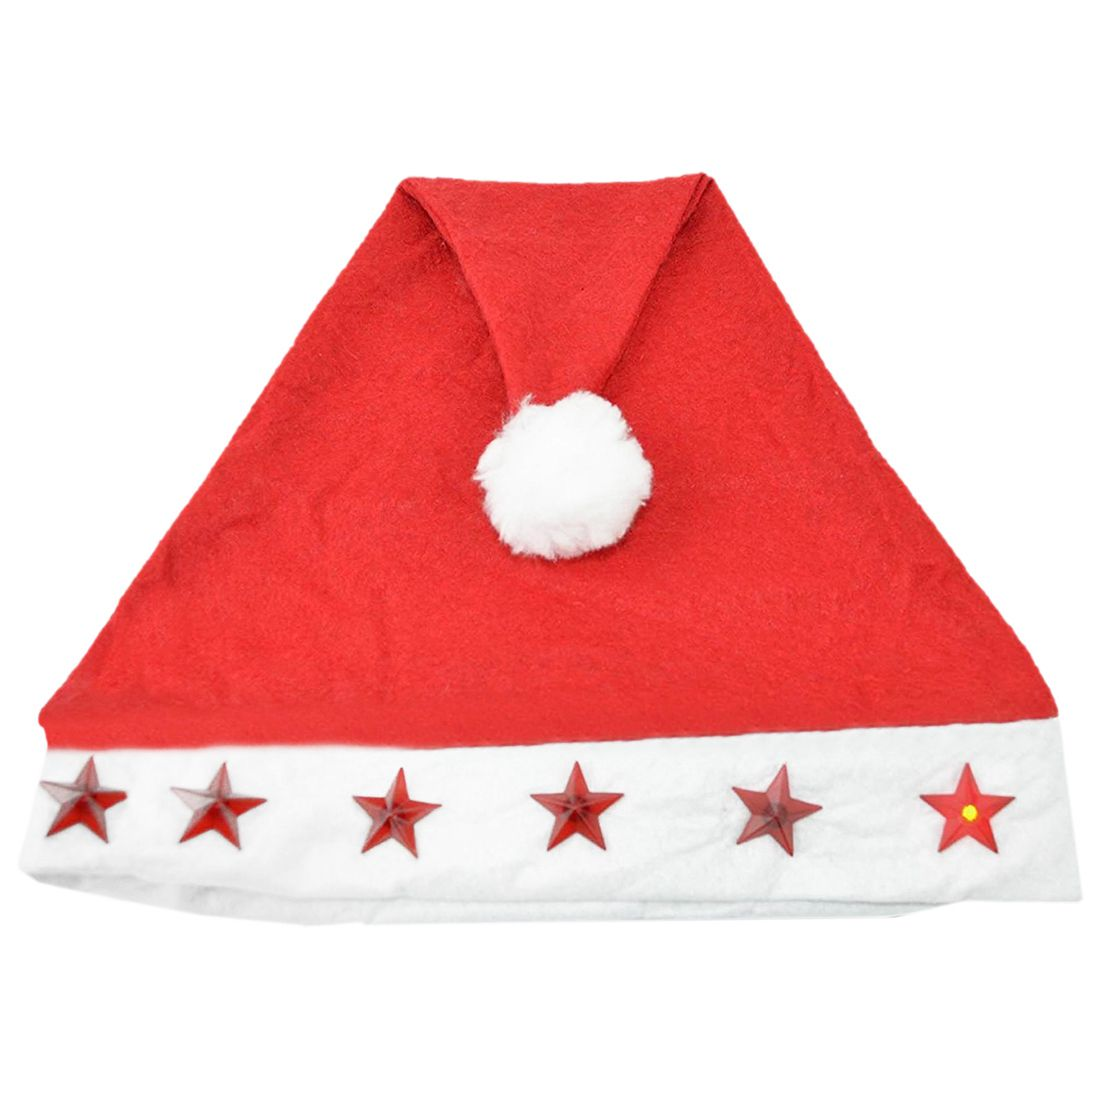 New Santa Hat with Flashing Lights Adult Size